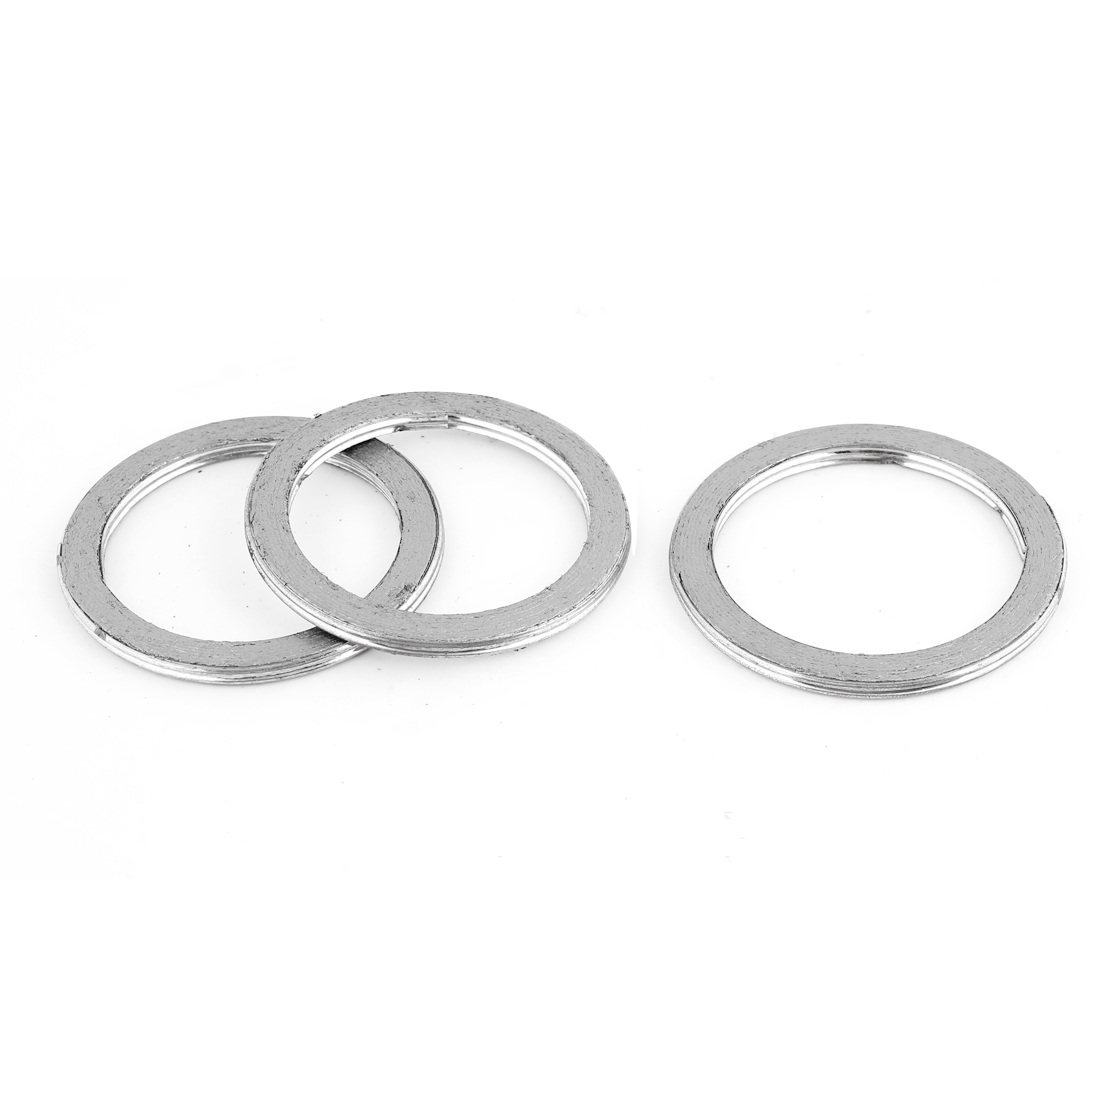 3 Pcs Auto Car Aluminum 50mm Inside Dia Engine Silencer Exhaust Gasket